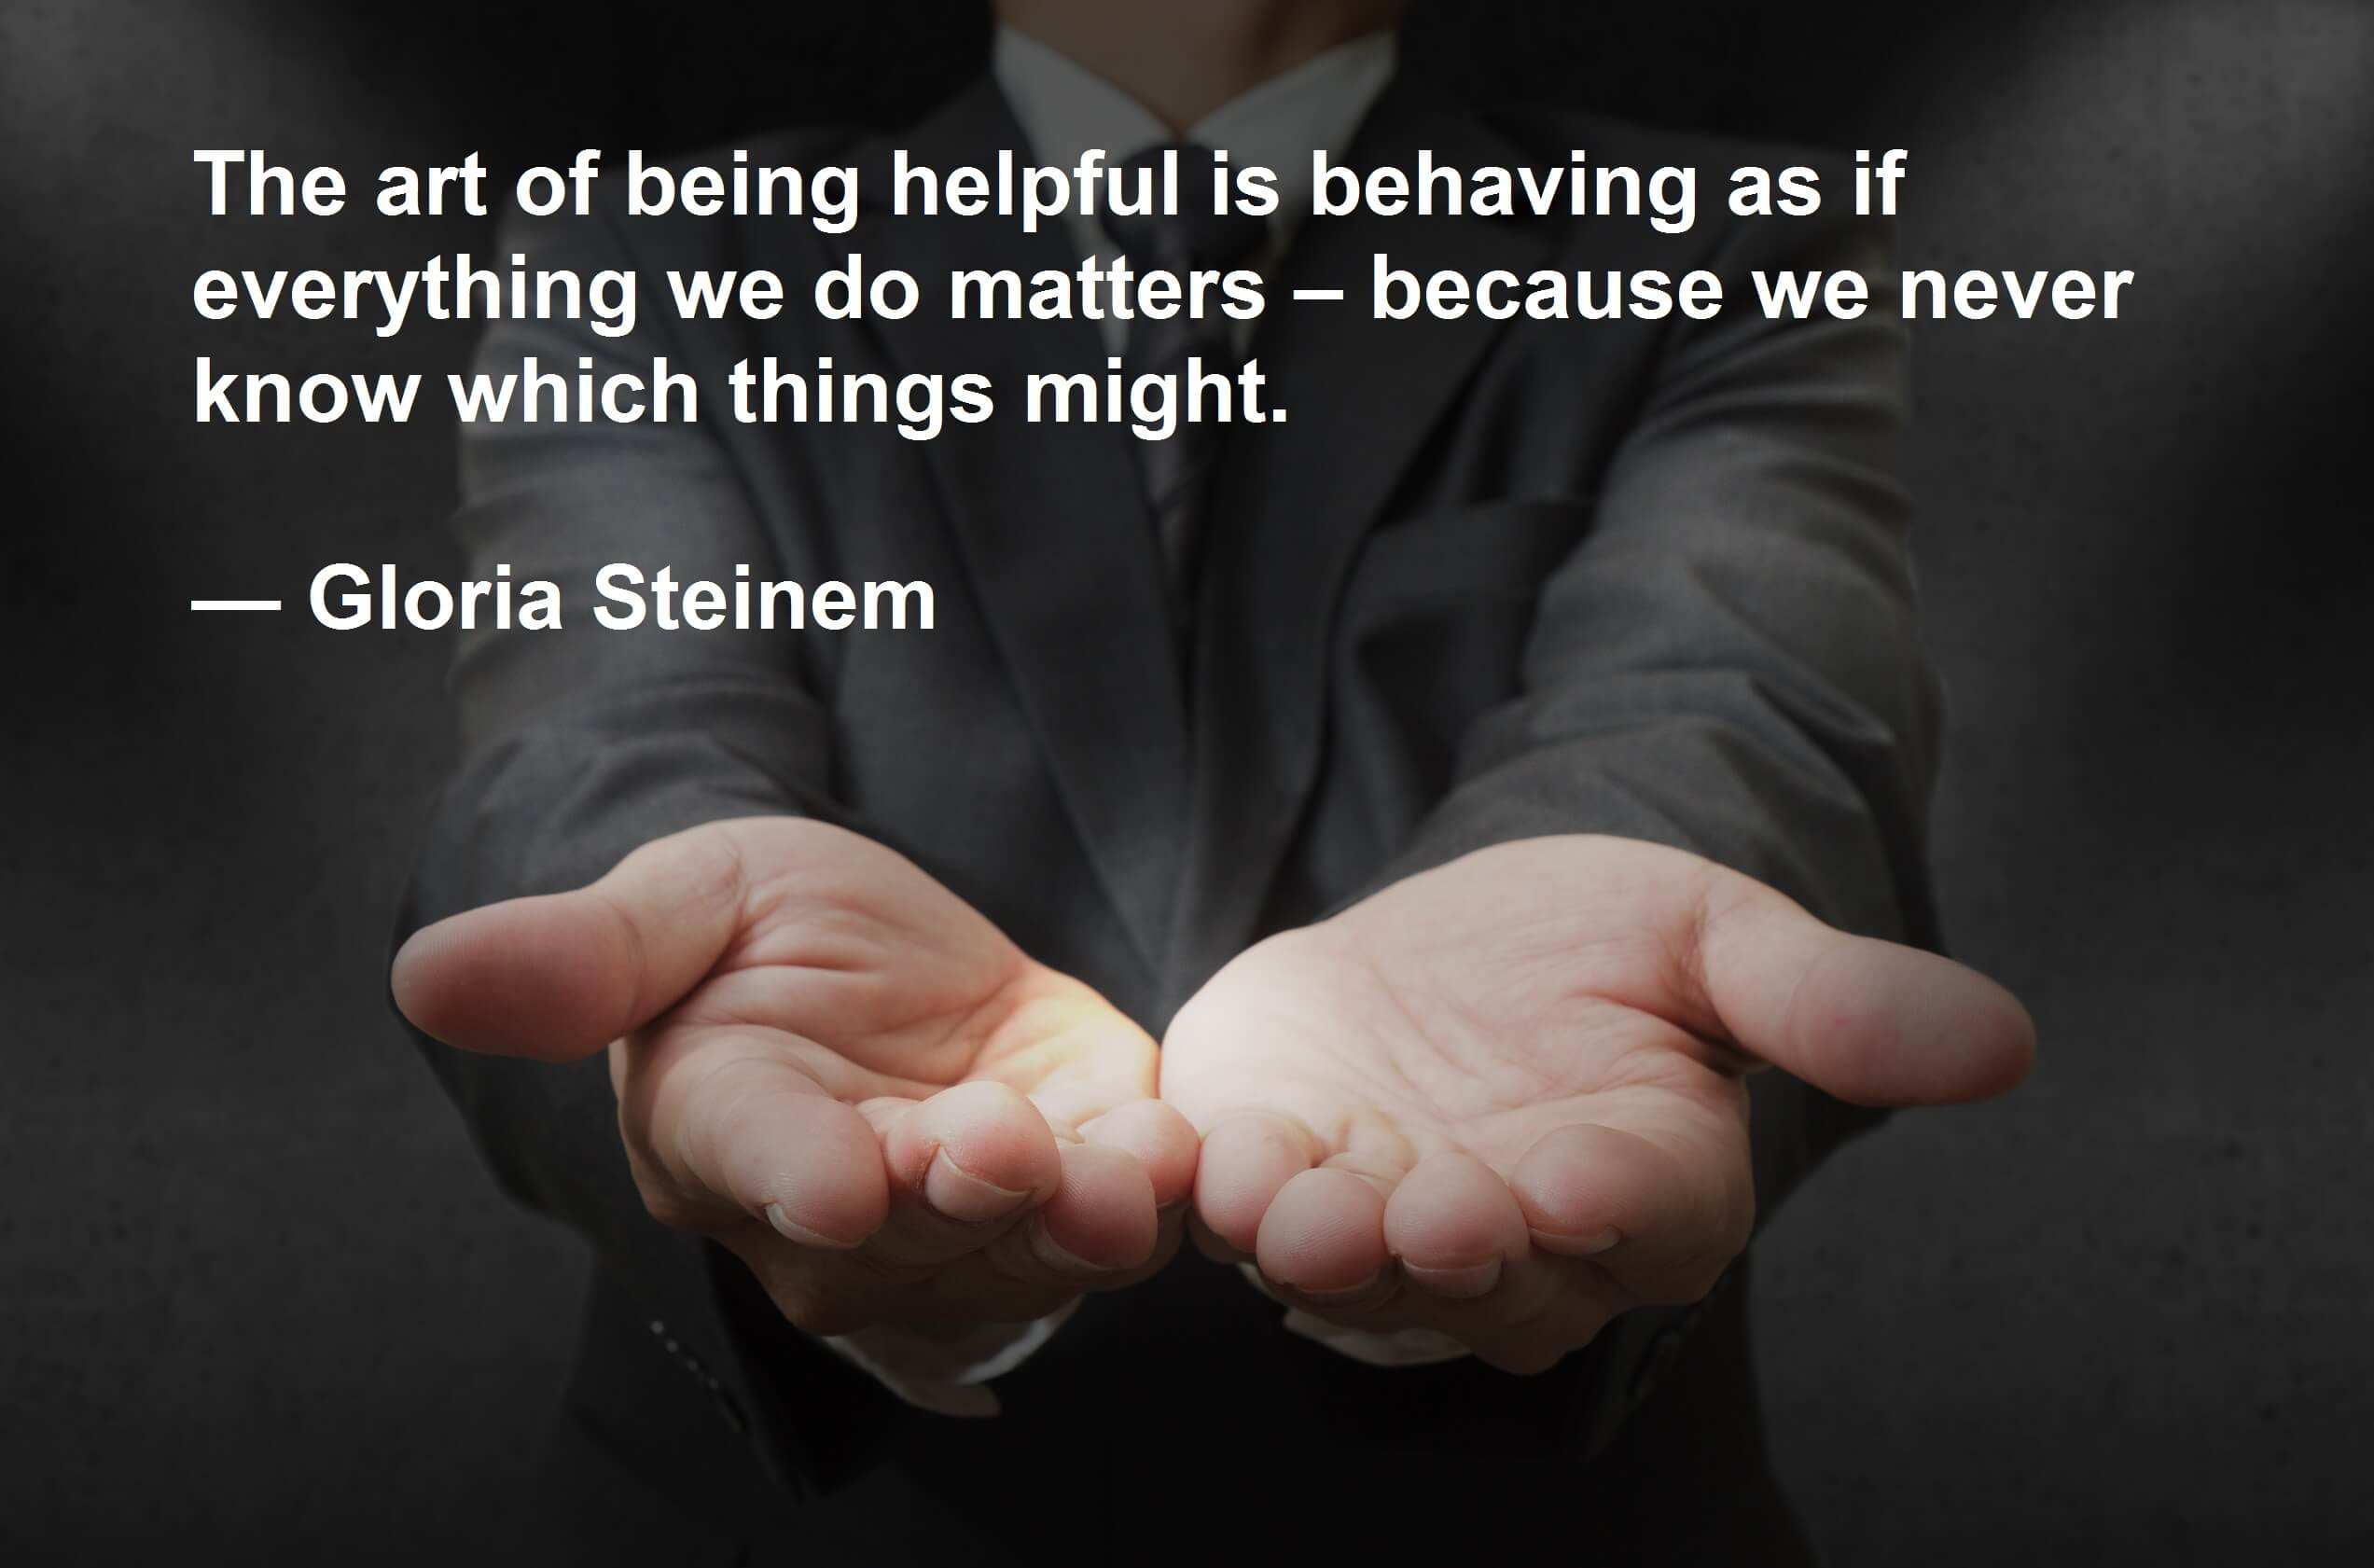 The art of being helpful is behaving as if everything we do matters – because we never know which things might. — Gloria Steinem